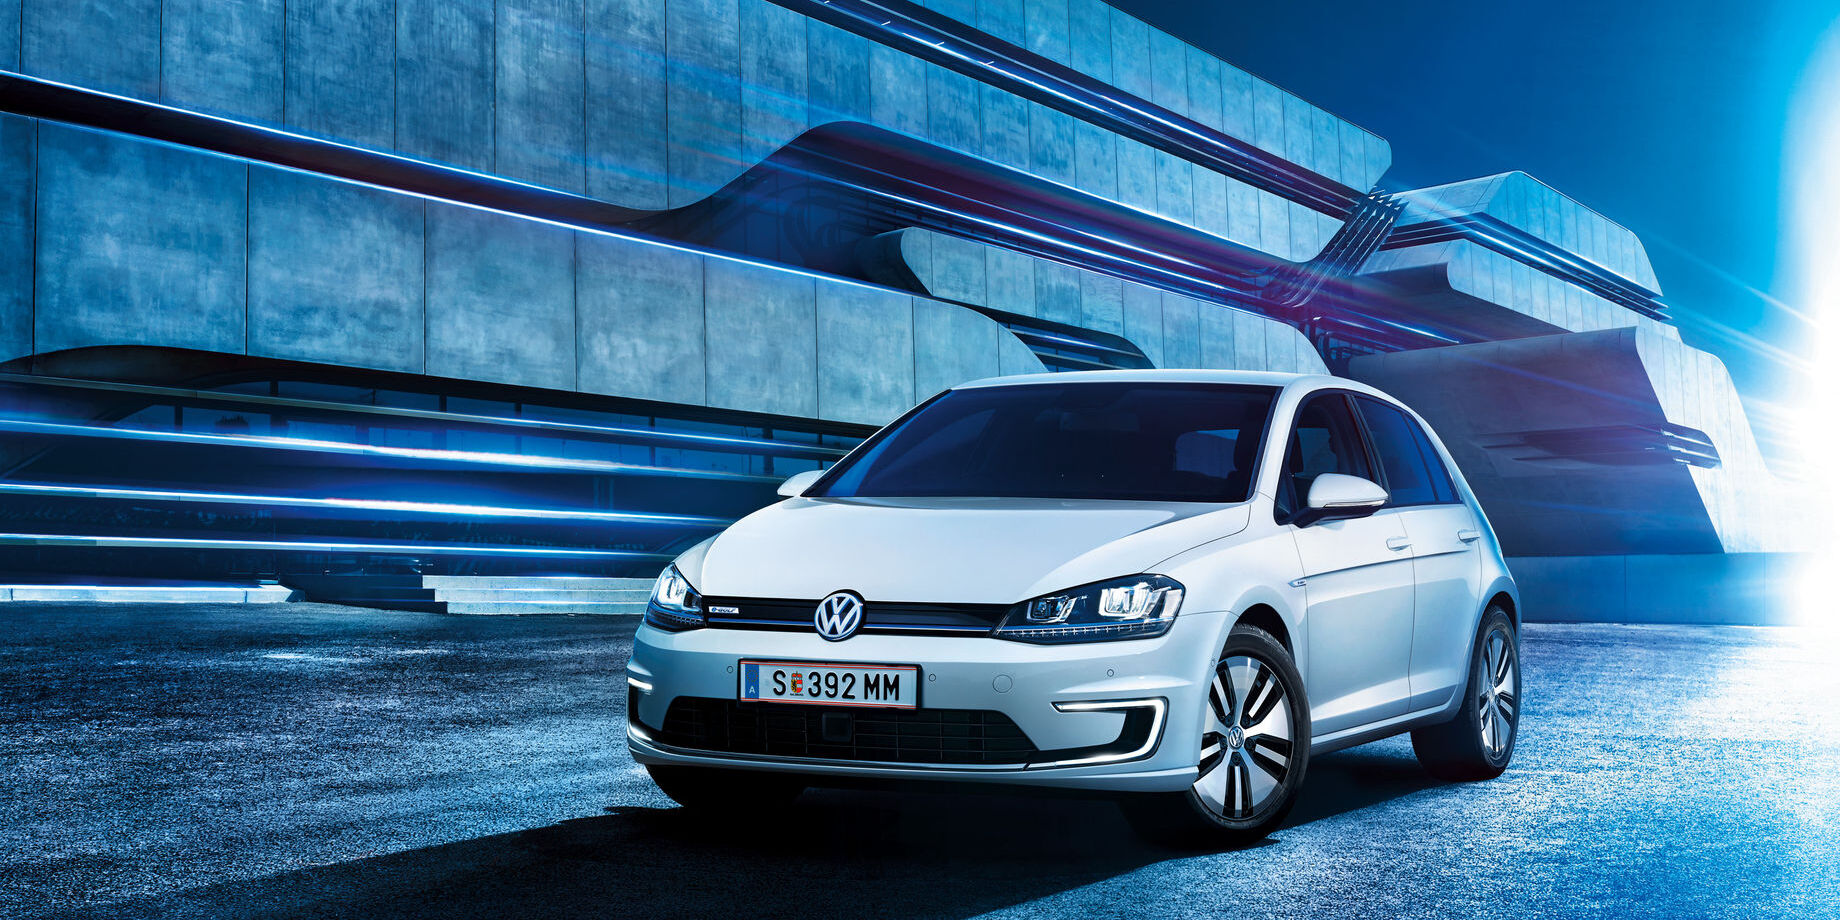 vw volkswagen e-golf automobil electric alb frontal